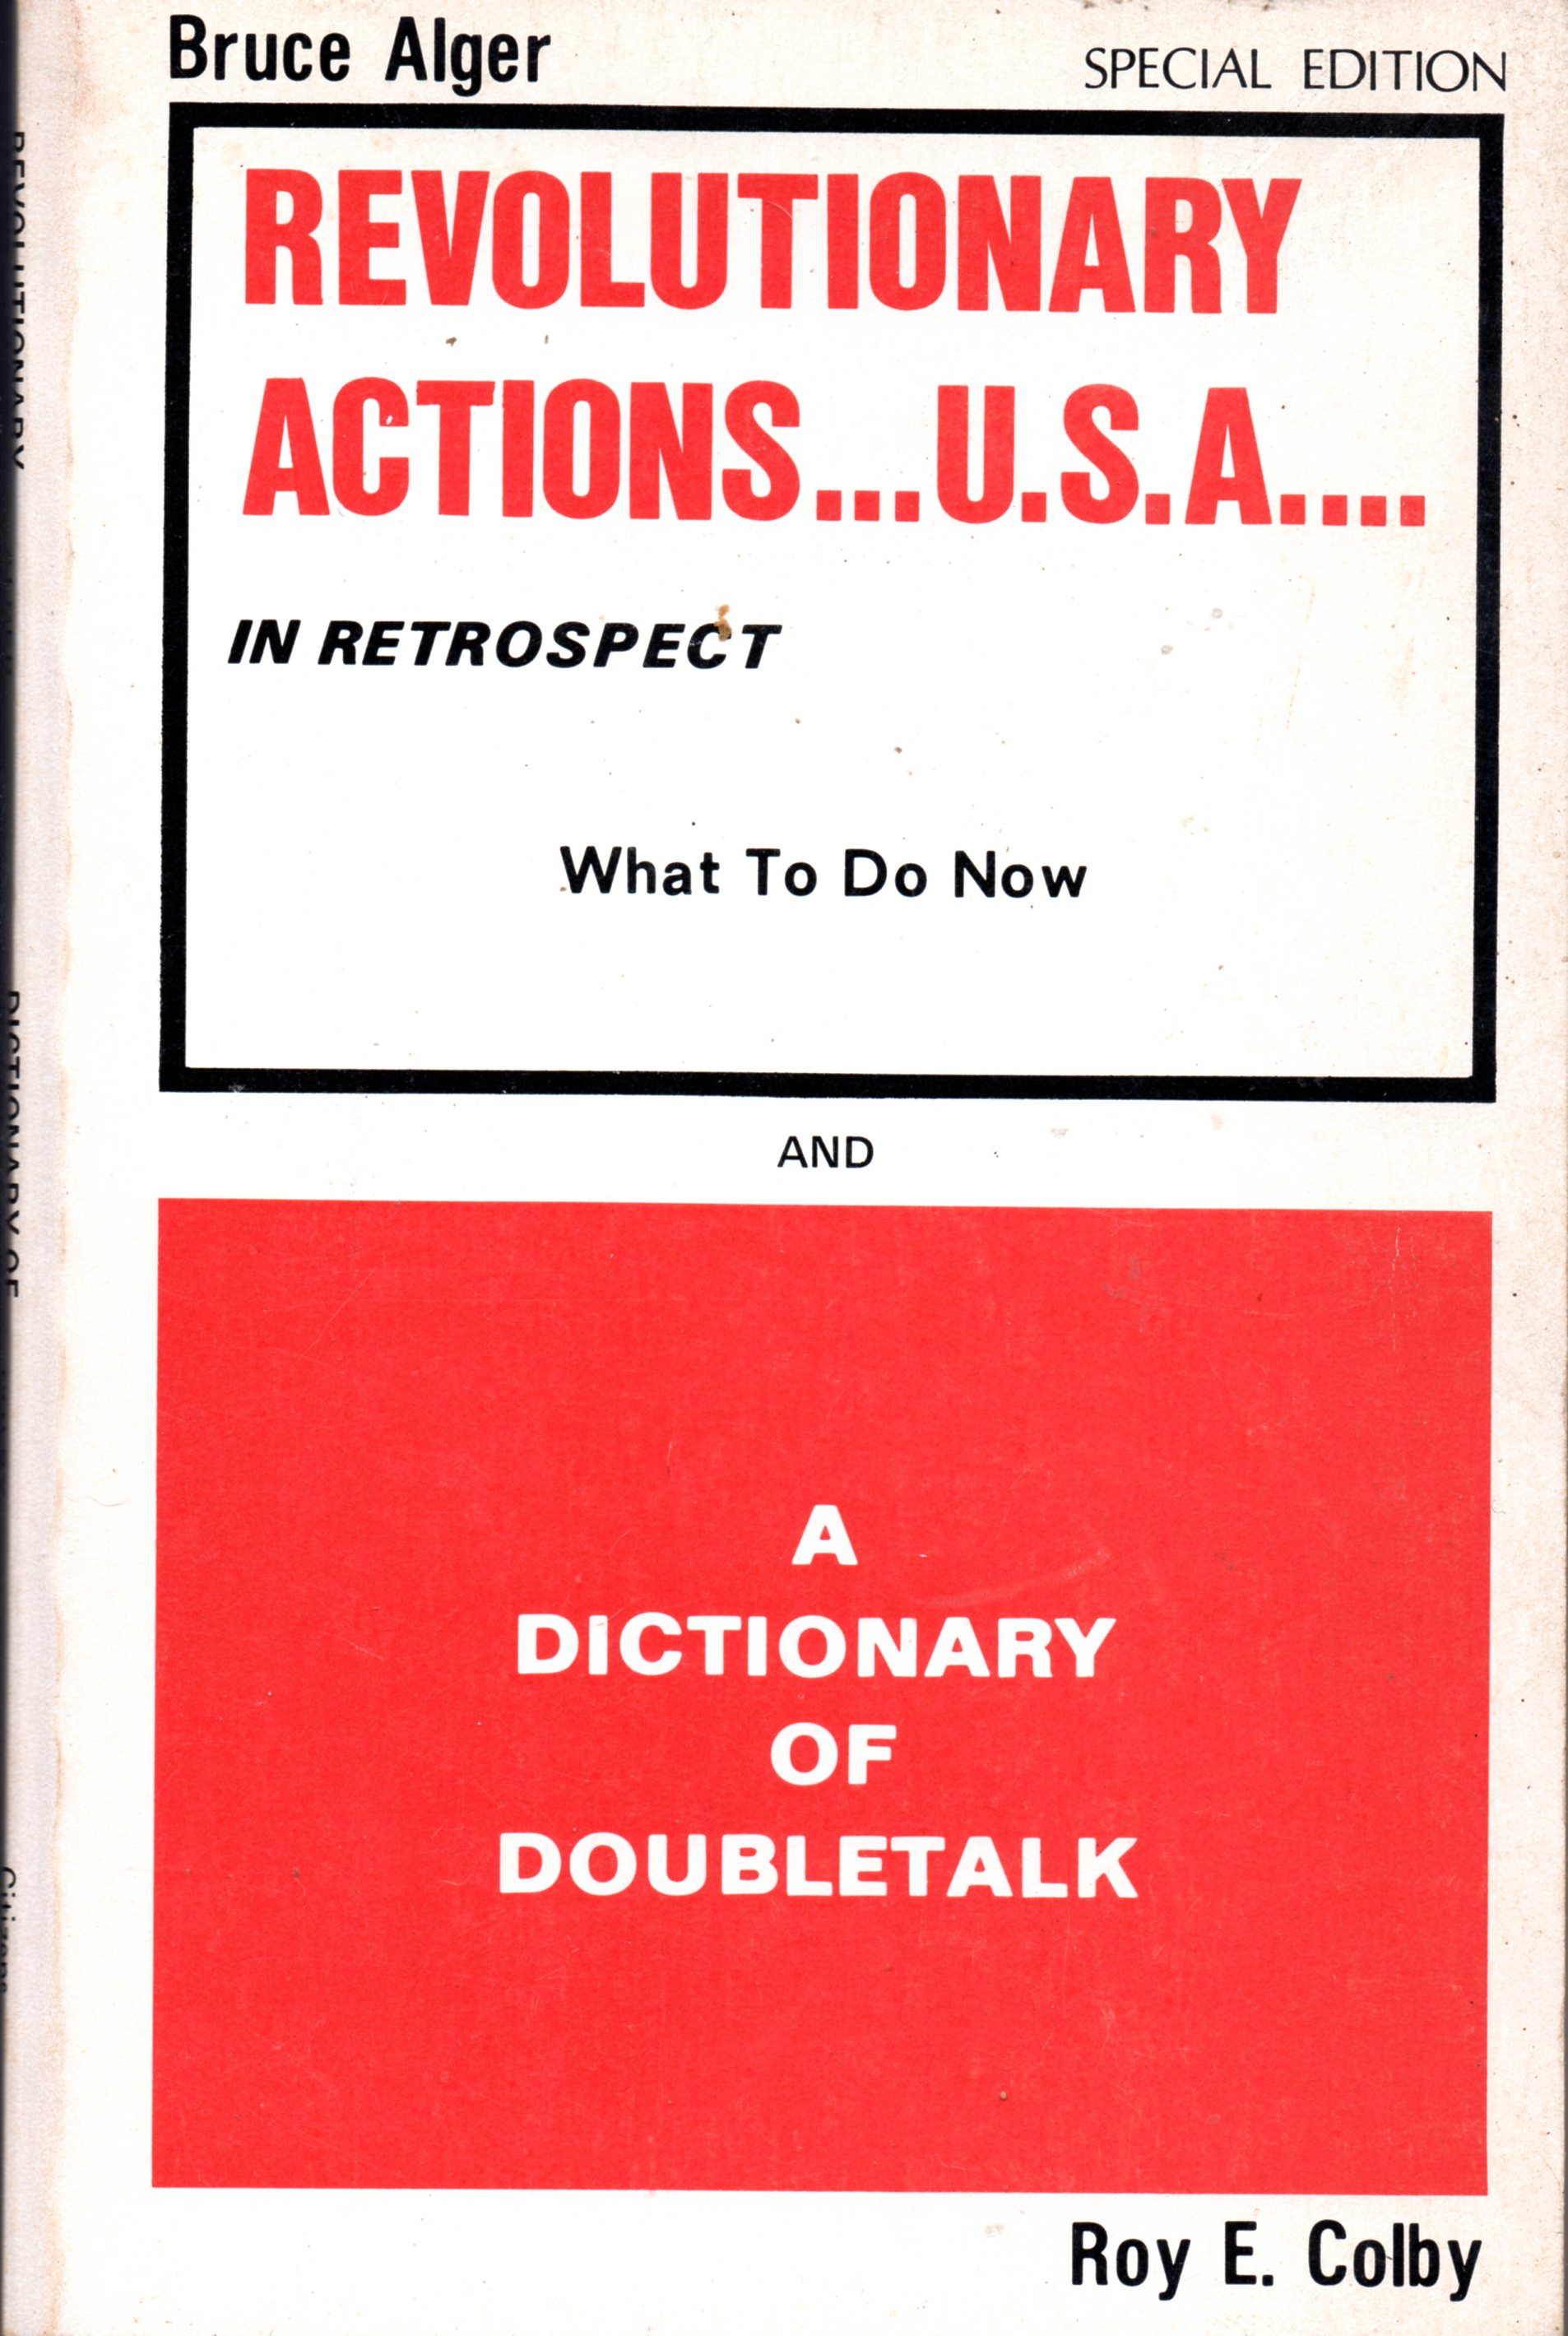 Image for Revolutionary Actions..USA...In Retrospect / A Dictionary of Doubletalk